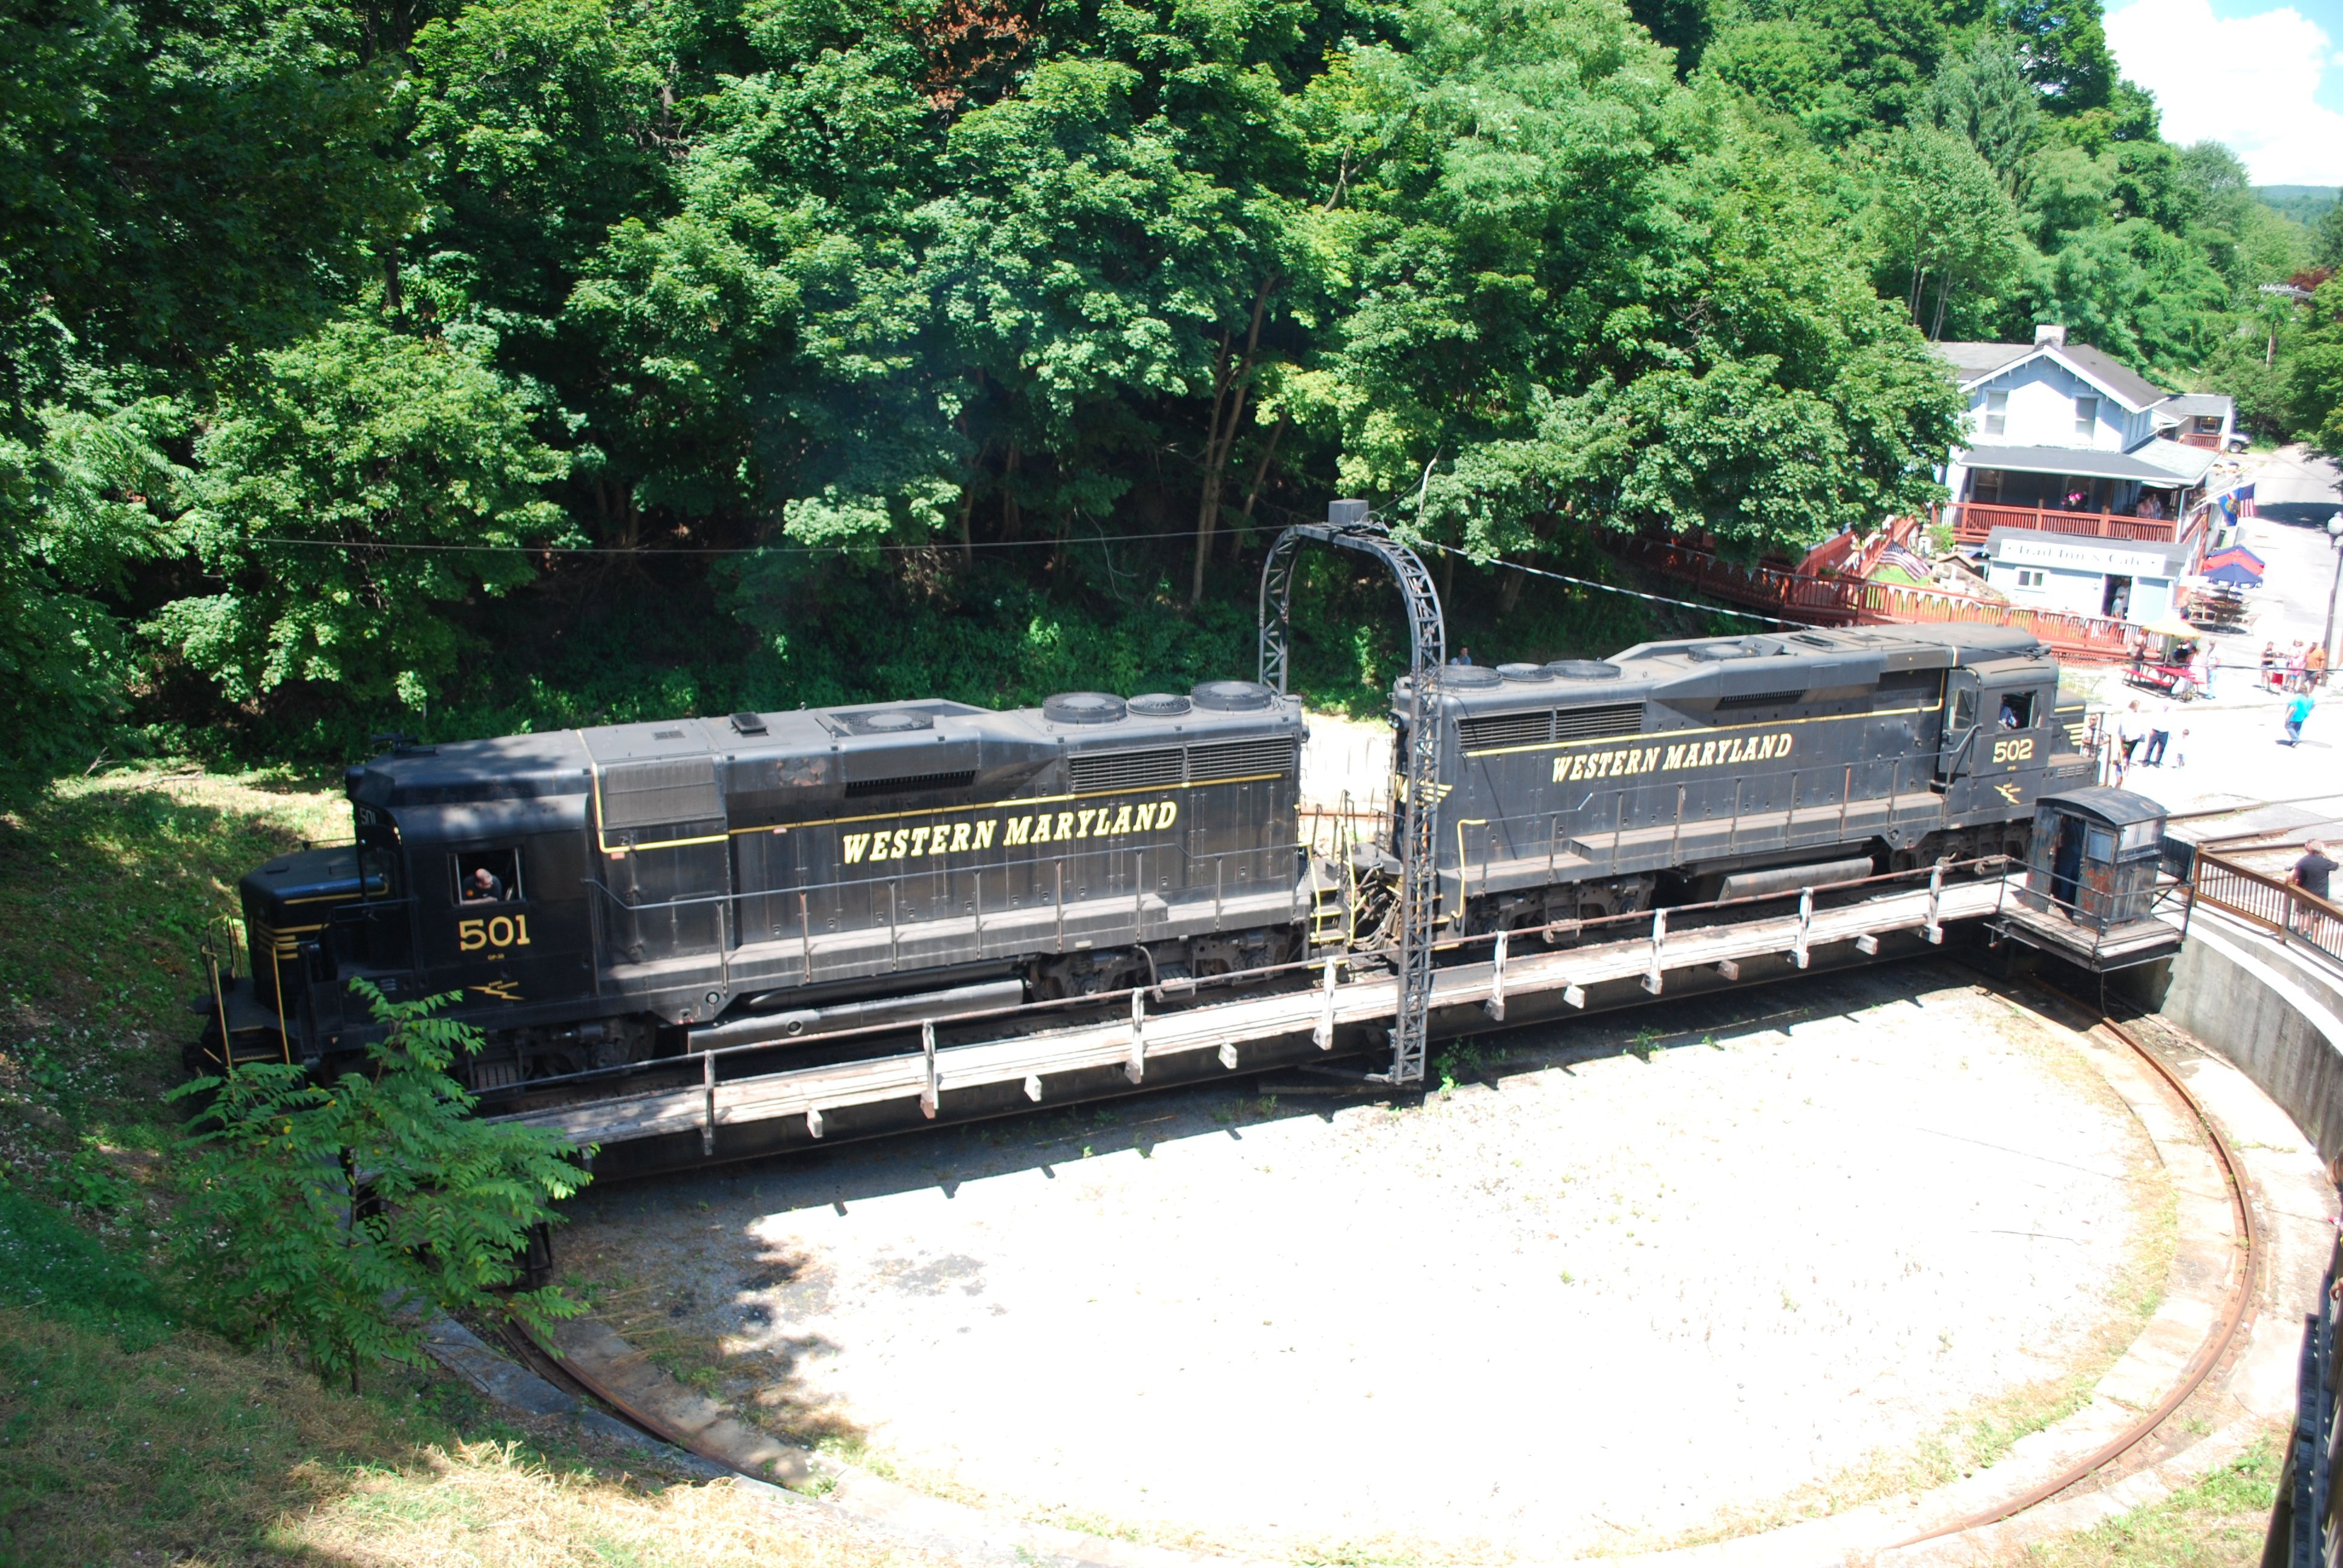 Turntable at Frostburg depot, Western Maryland Scenic